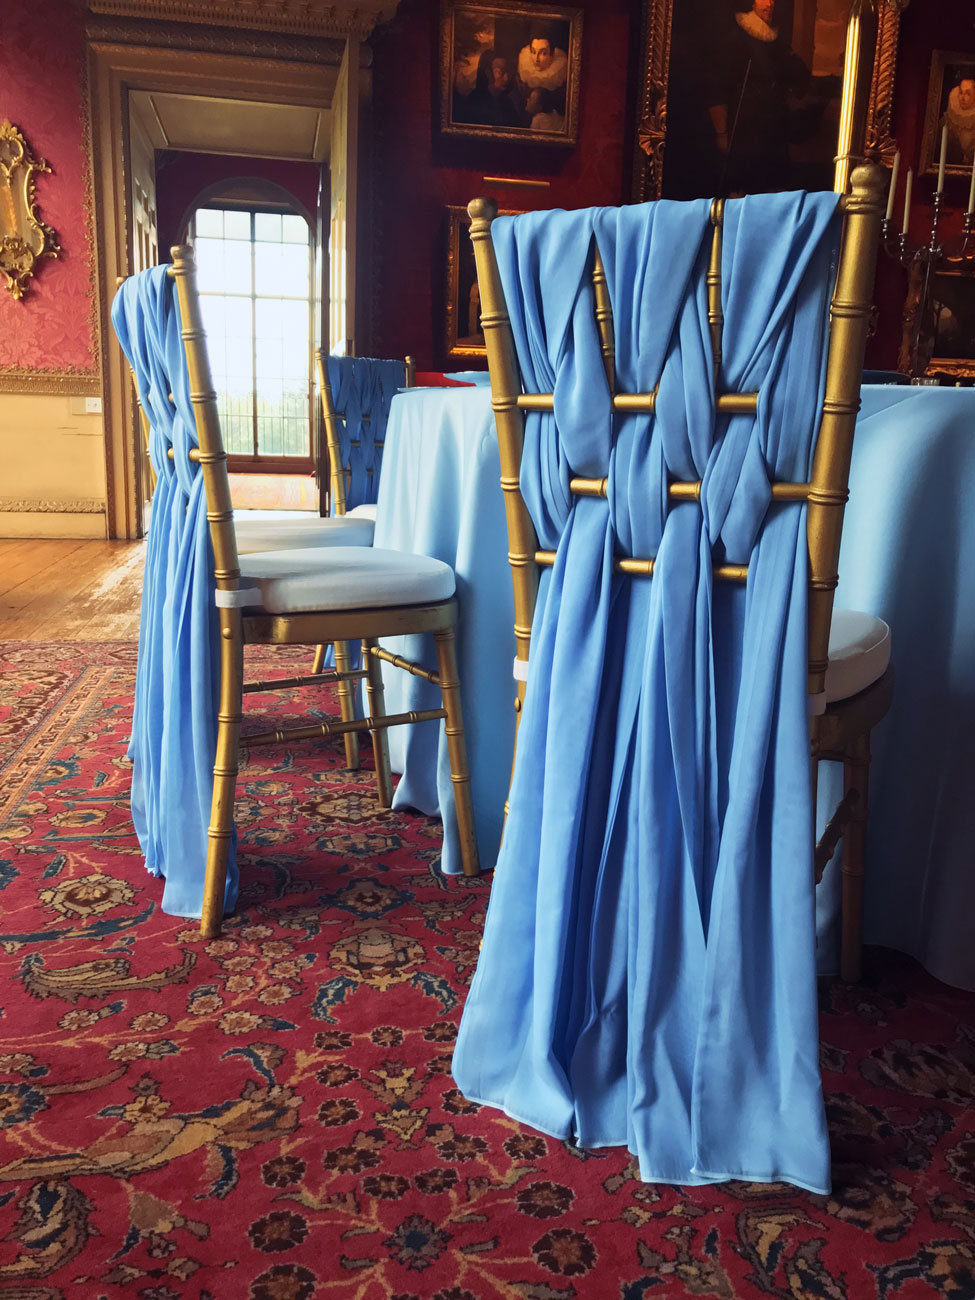 Powder Blue Verona table linen, Gold Chiavari Chairs with White Essential seat pads and Powder Blue Santina Weaves at Hopetoun House